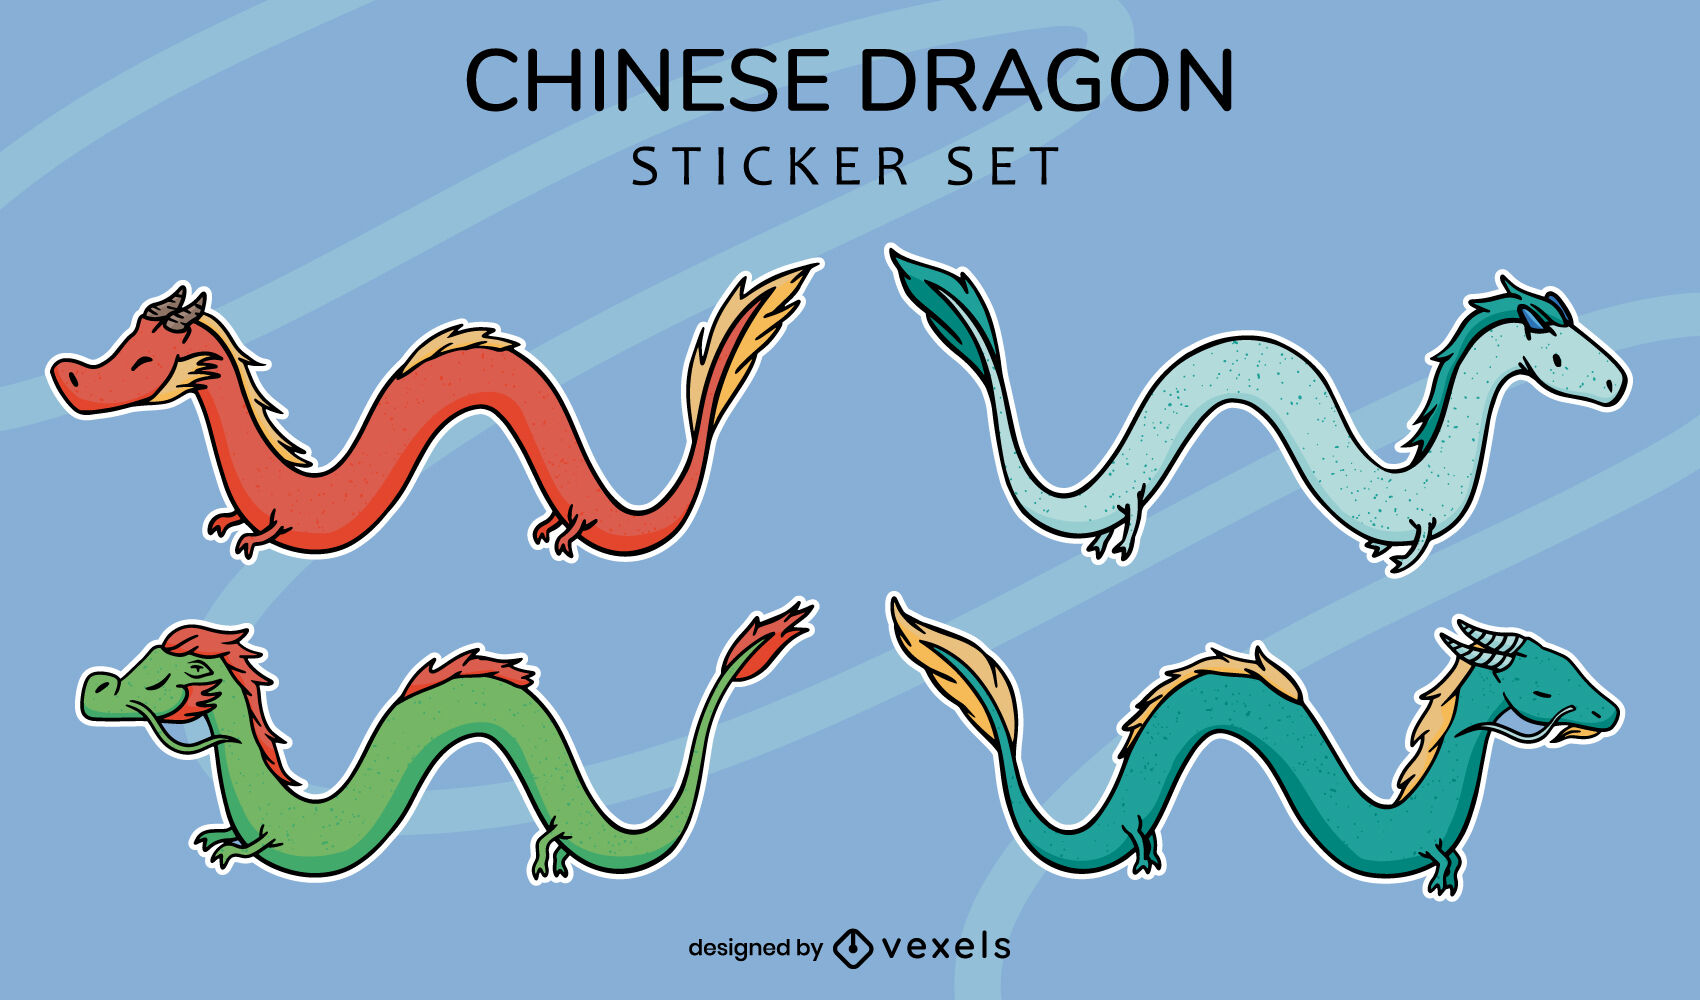 Chinese dragon mythological creature stickers